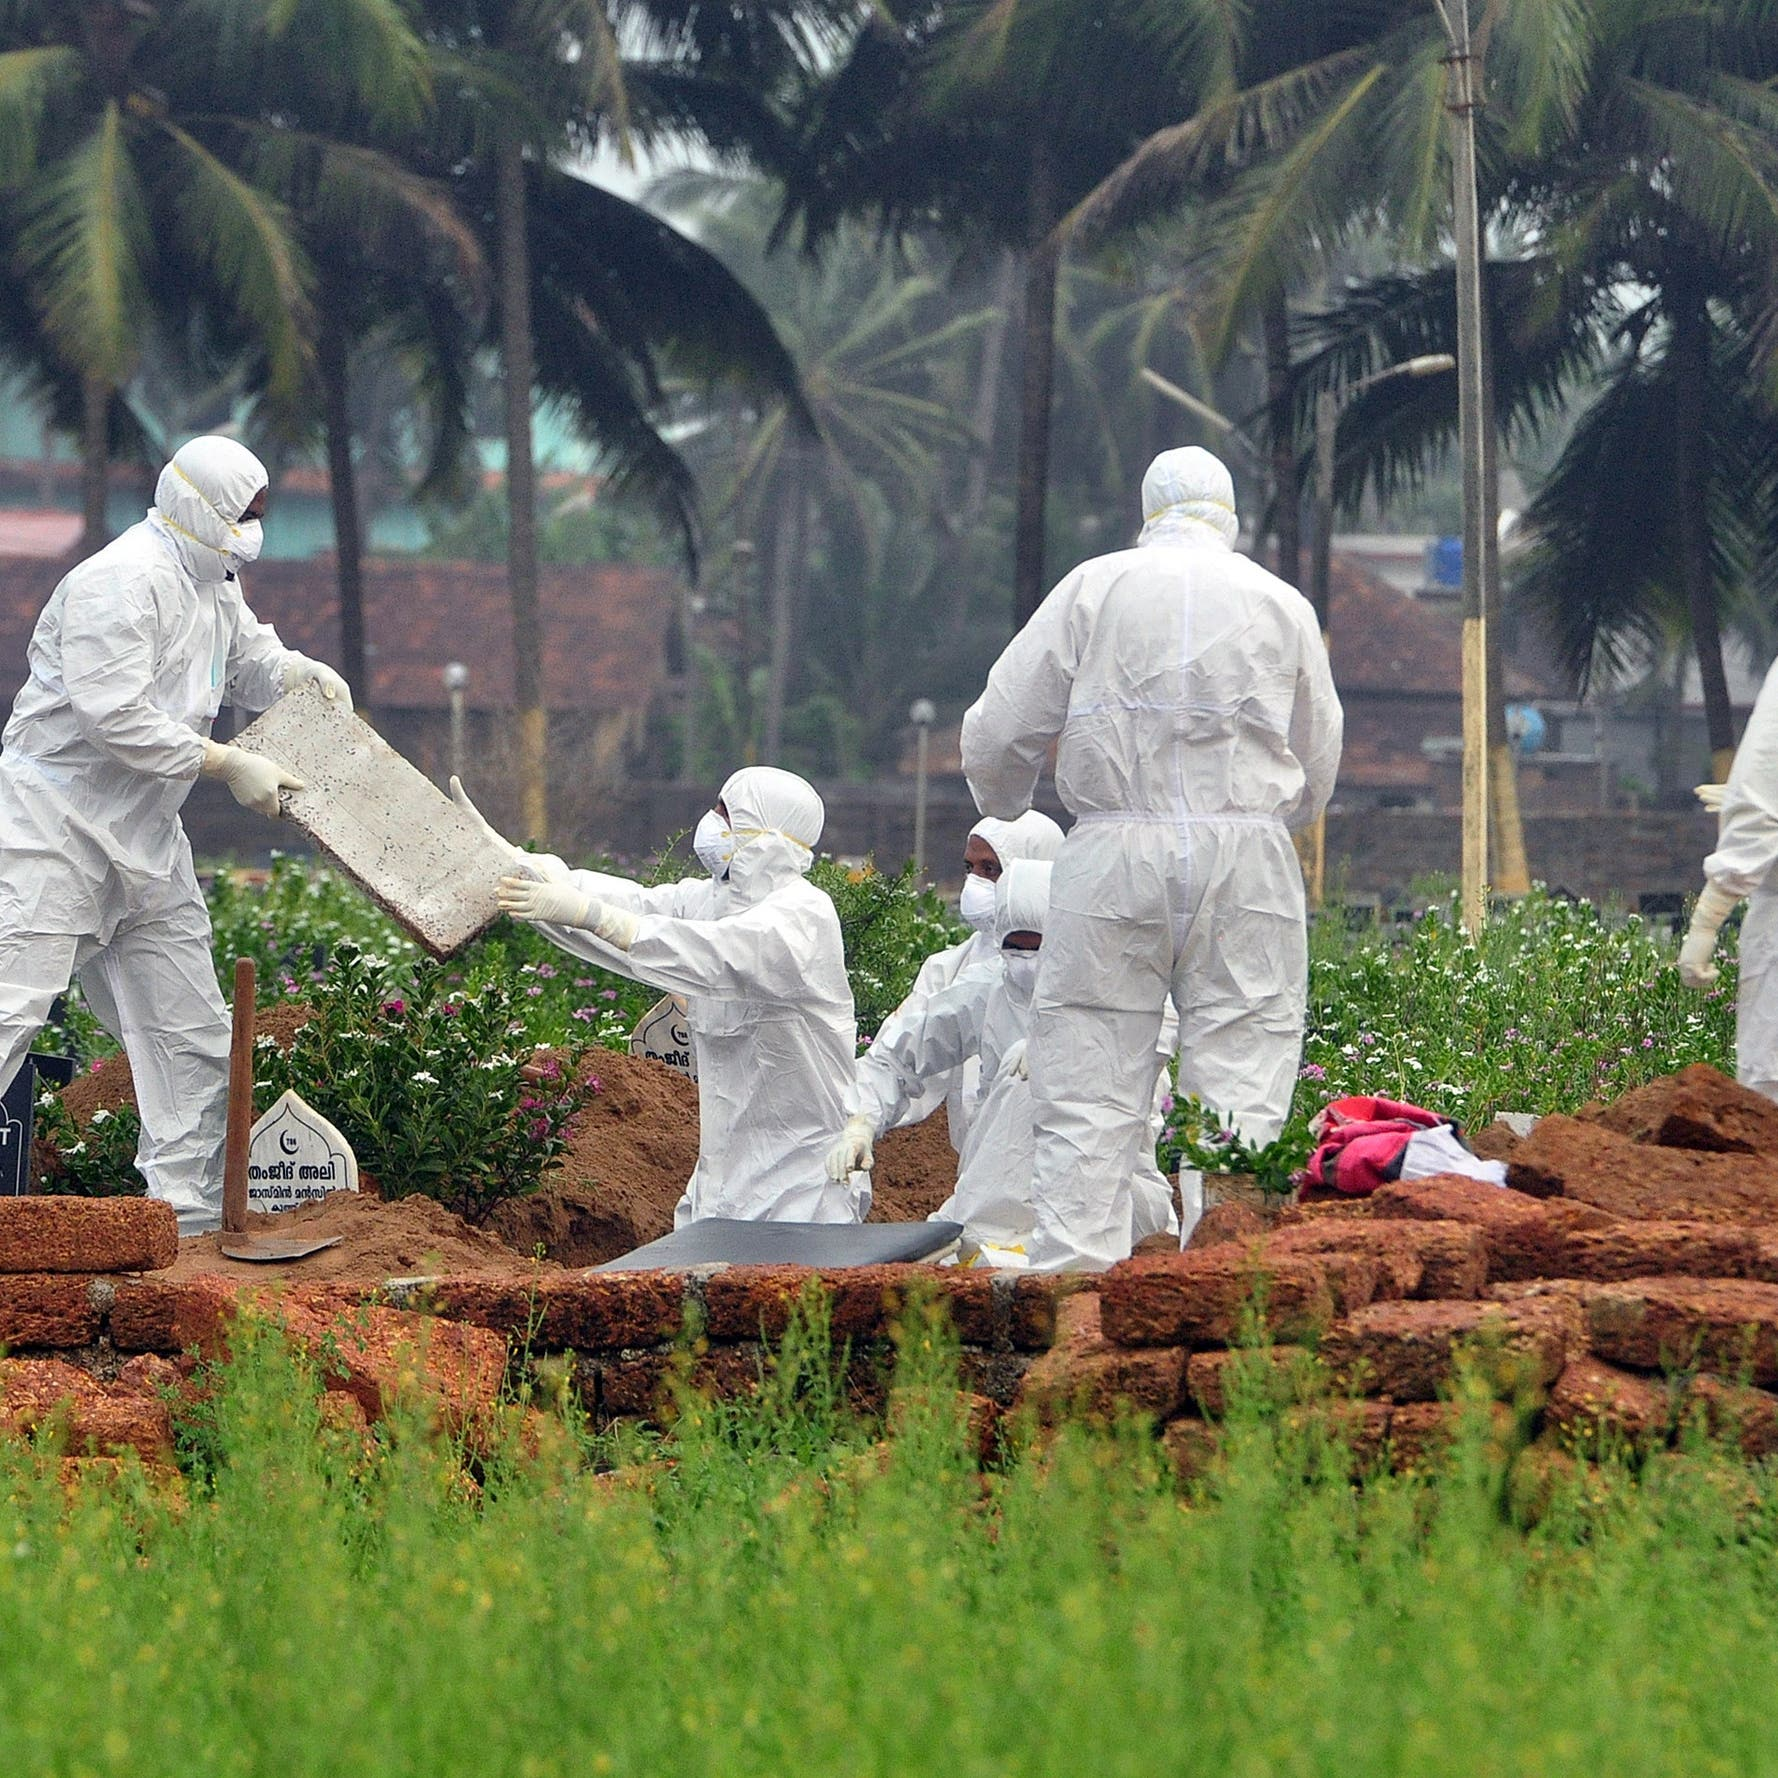 Indian boy dies of Nipah virus in Kerala after being hospitalized with symptoms